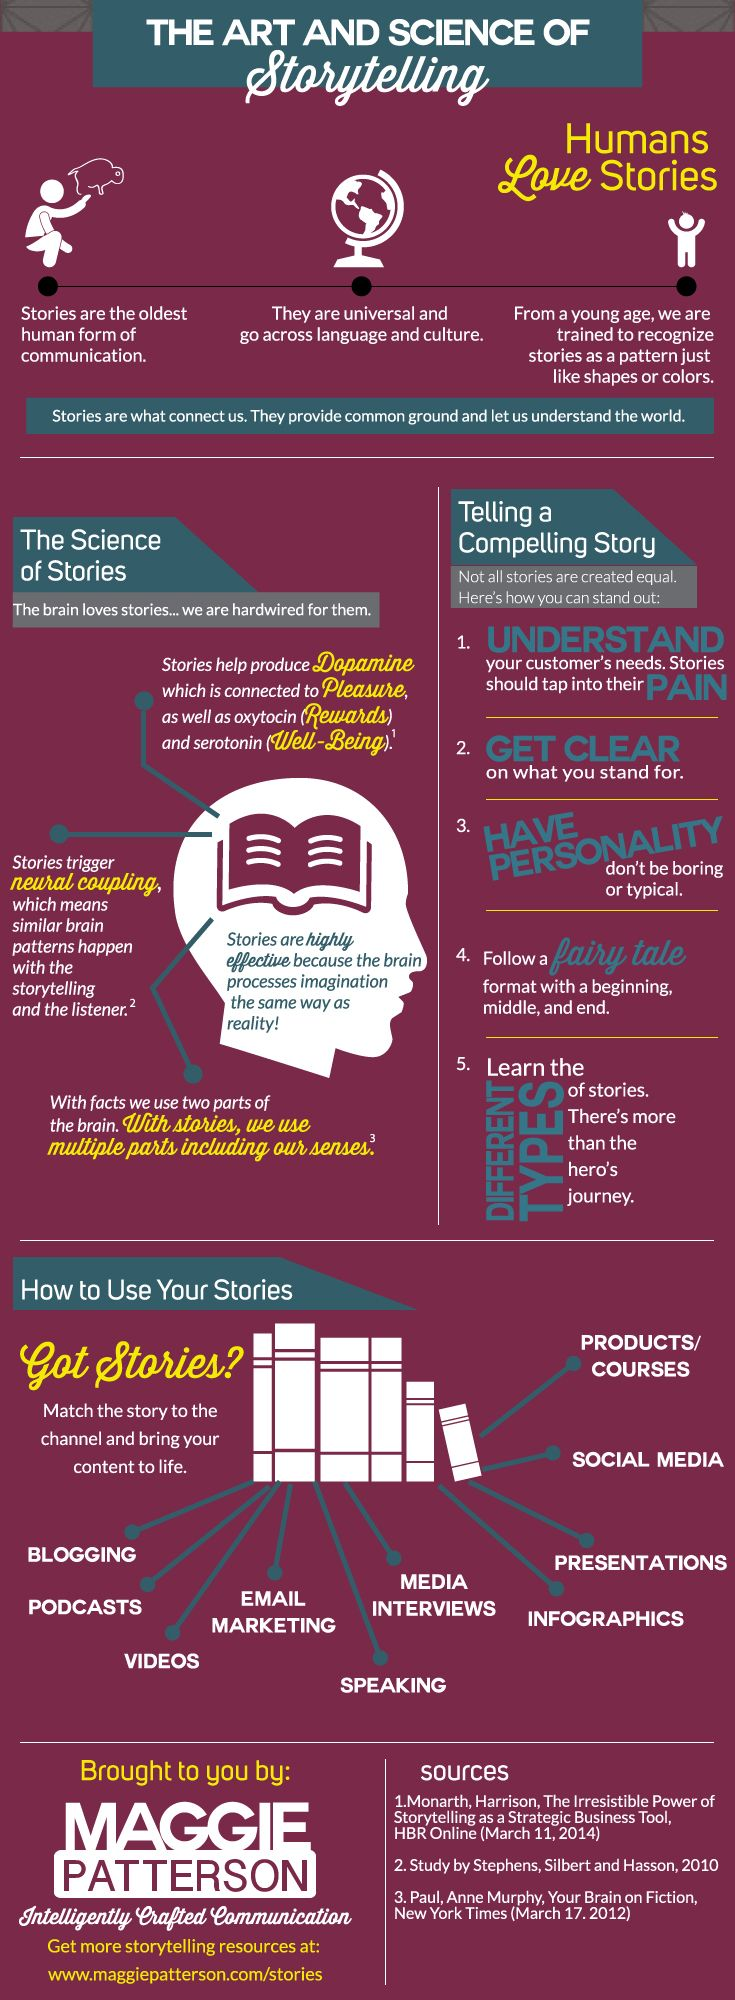 STORYTELLING // Overwhelmed with all the ways you 'should' brand & market your business? I thought so, that's why I created this easy to digest storytelling infographic that shares why storytelling is so effective, how exactly to use stories in your marketing and ways to tell compelling stories that help you stand out. Click through for more storytelling resources!